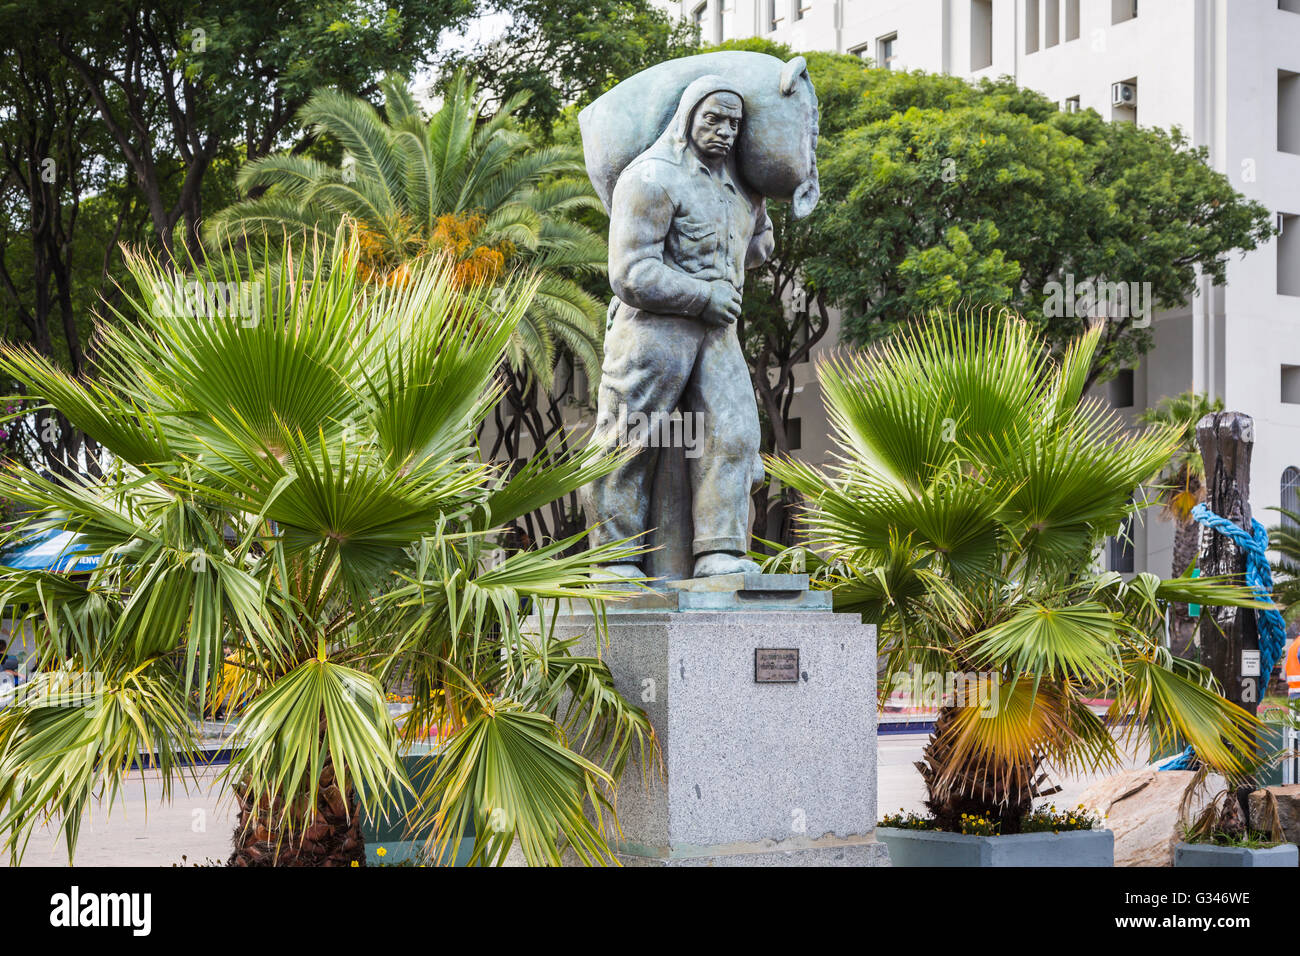 A workers statue in Montevideo, Uruguay, South America. - Stock Image